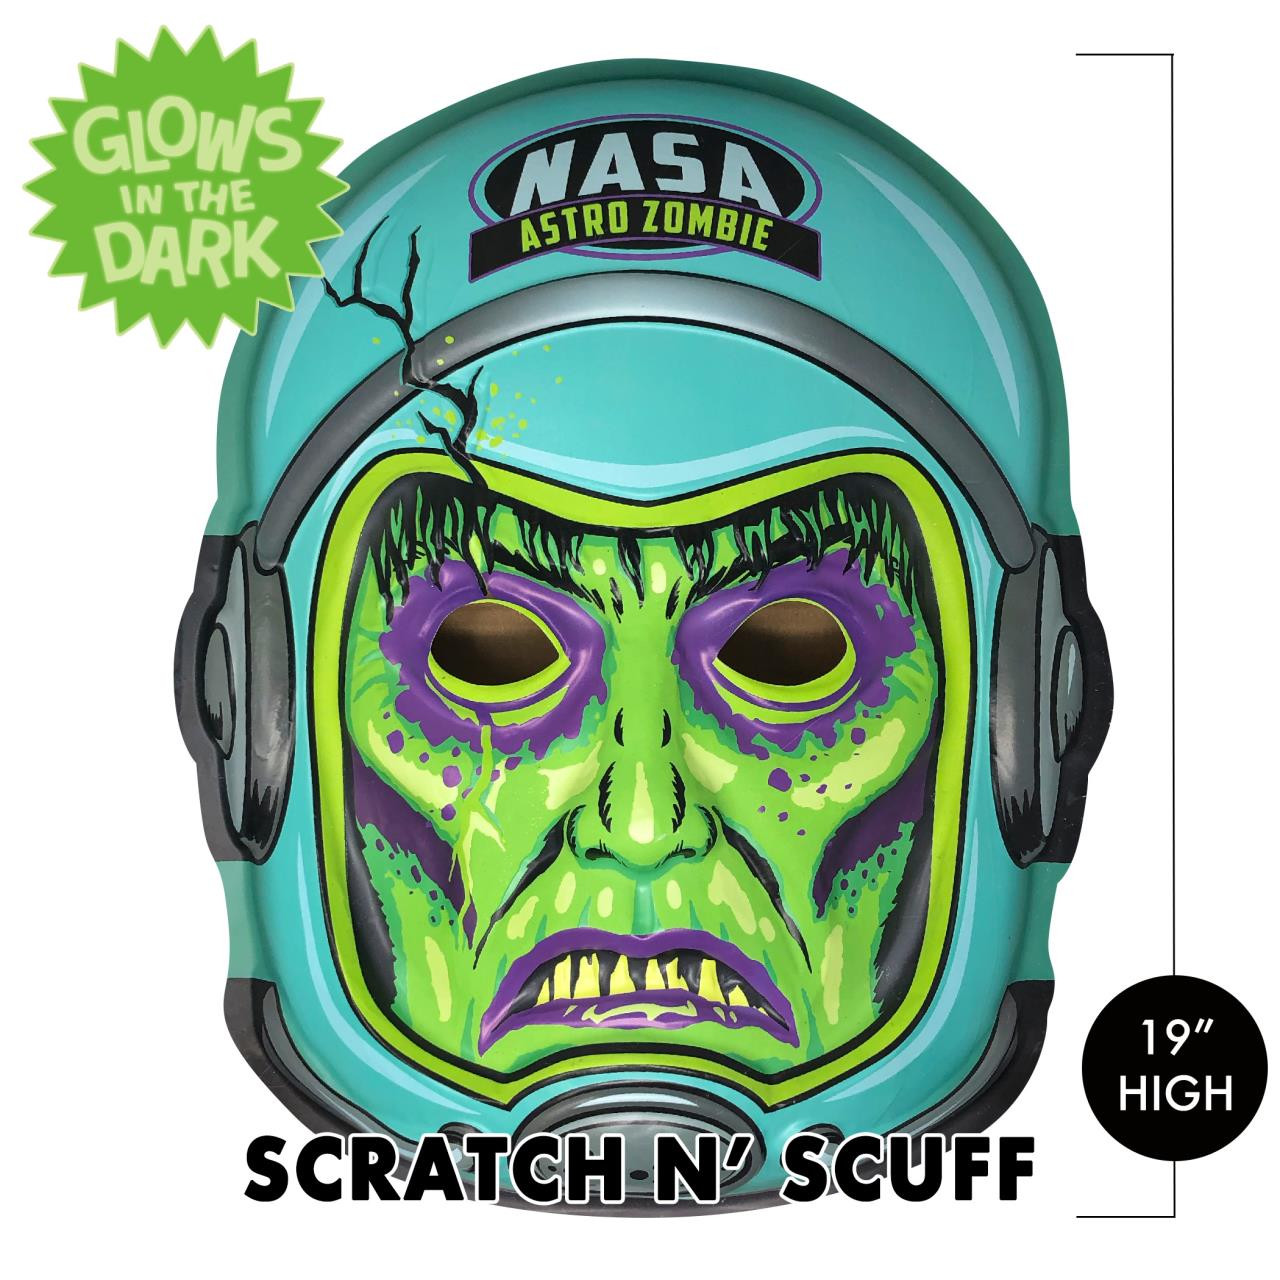 Scratch n' Scuff Zero Gravity Zombie 3-D Wall Decor* -